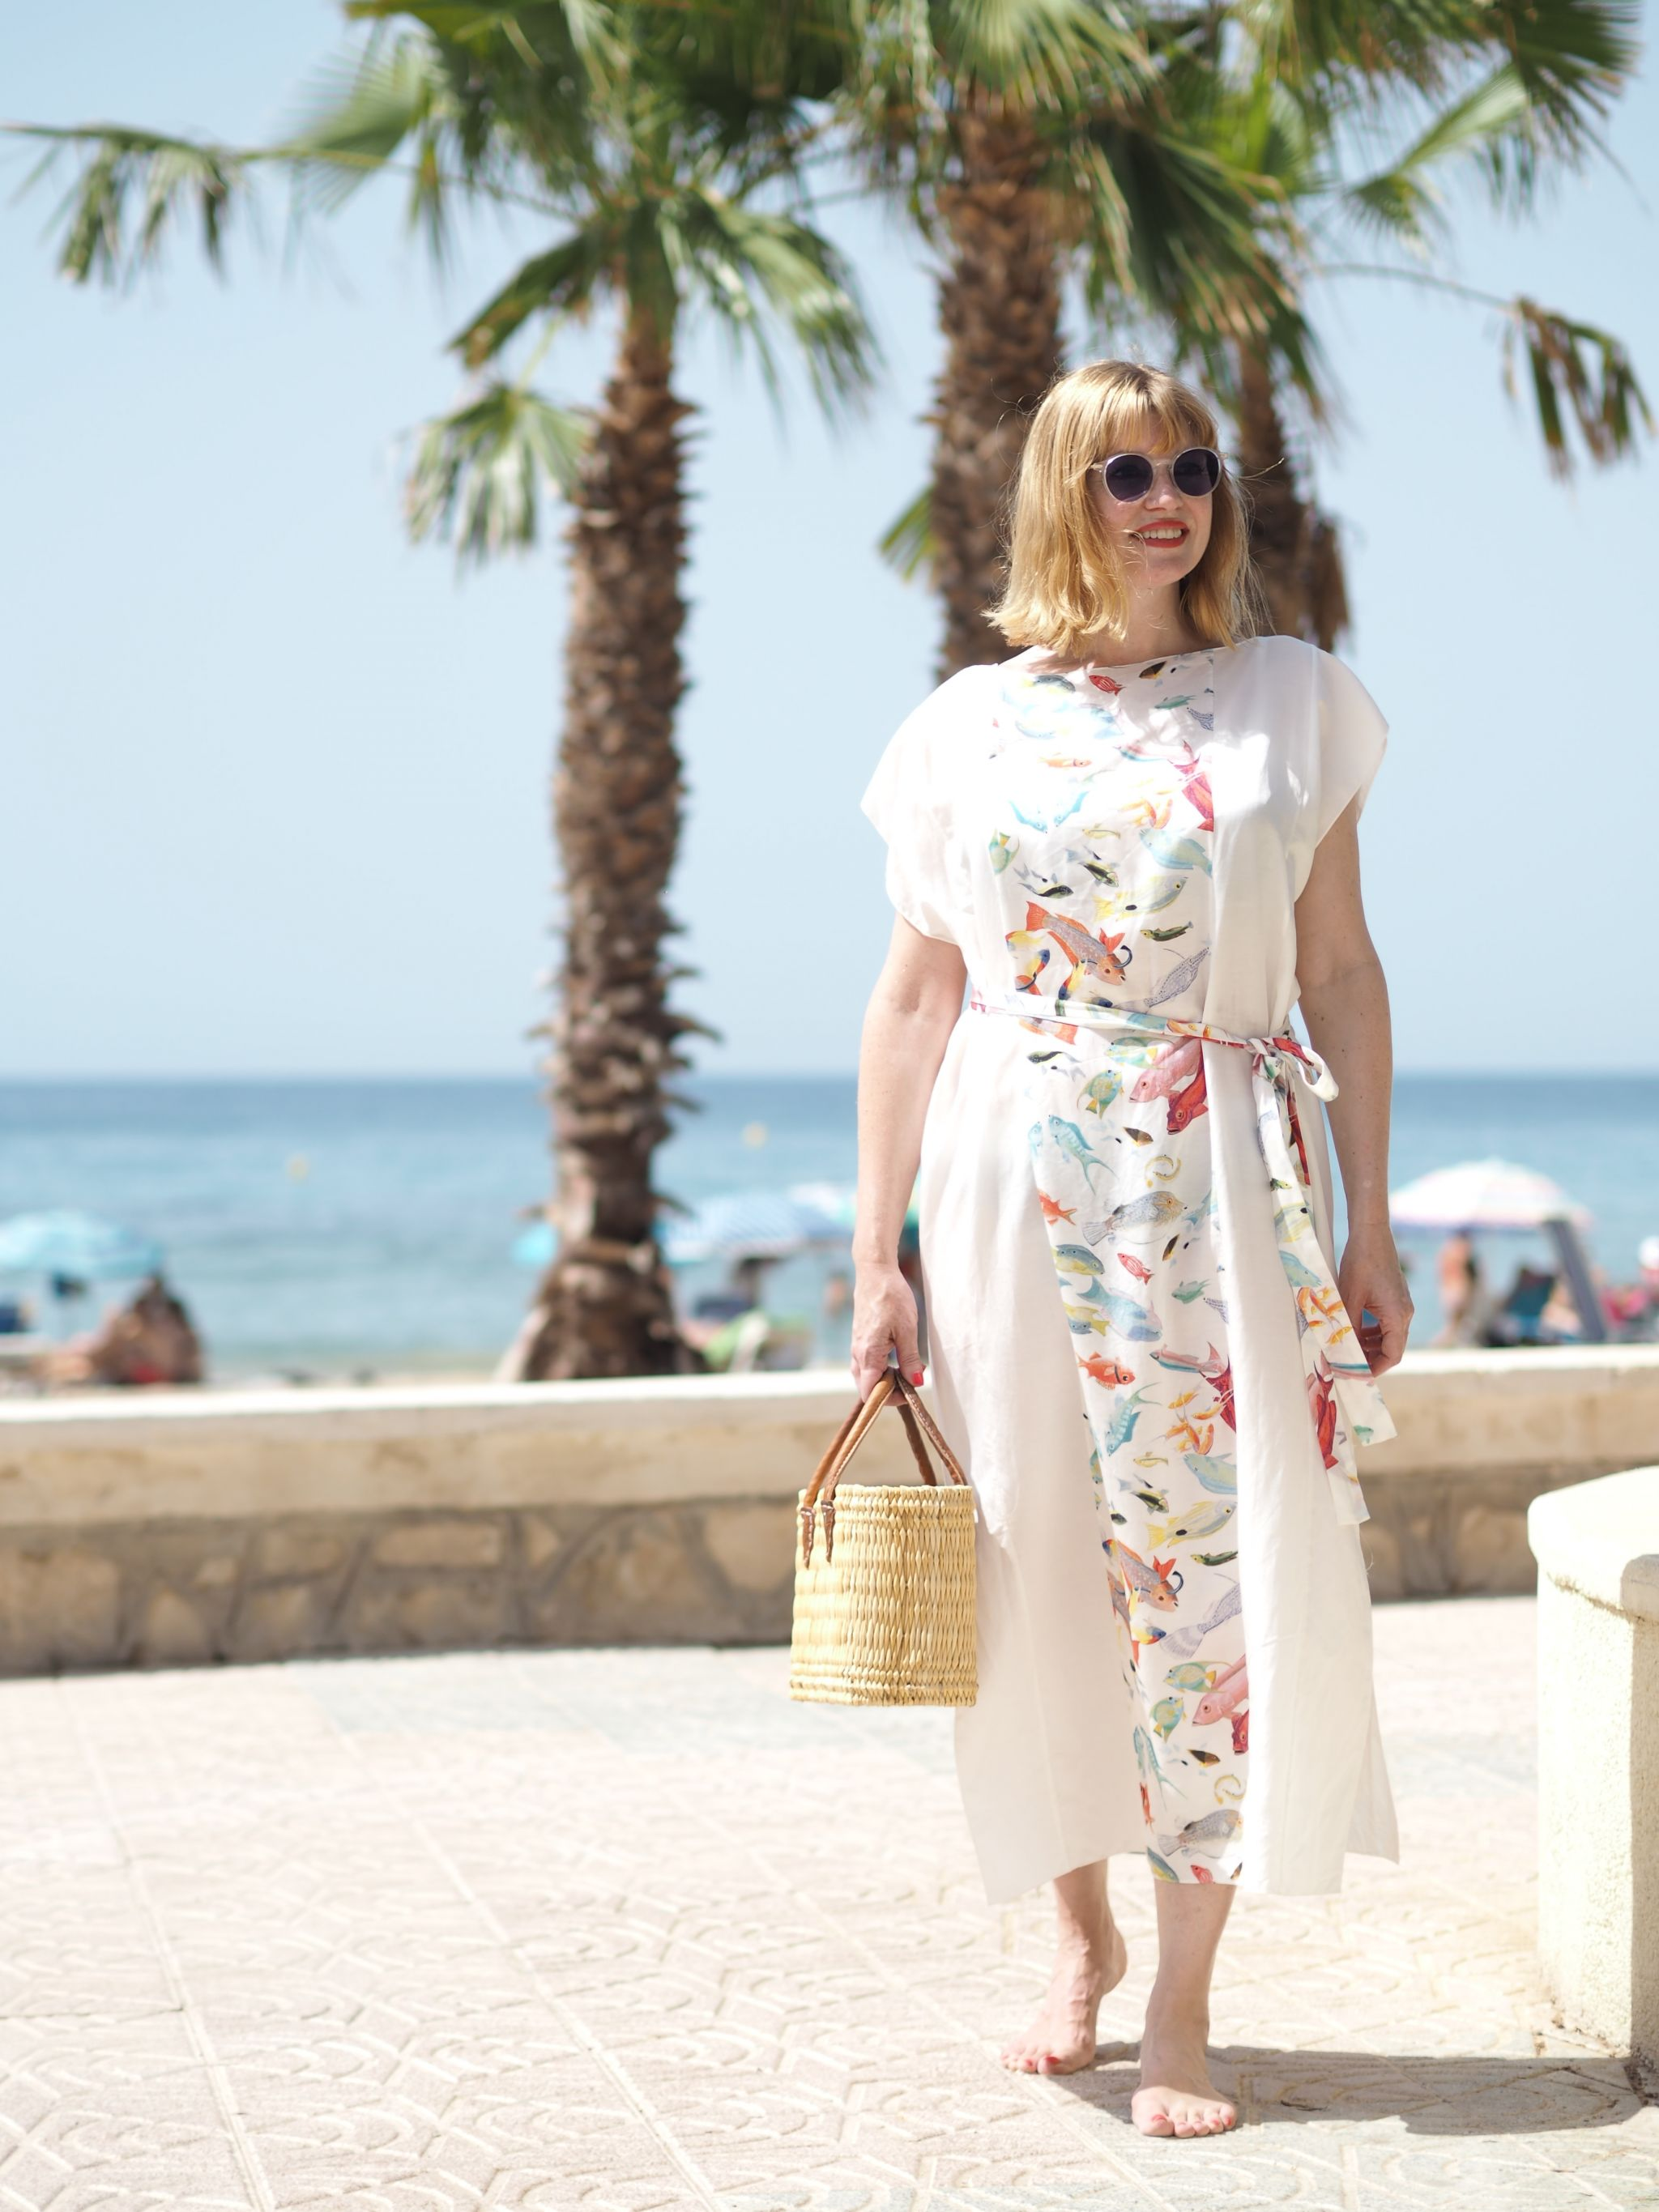 Rose Fulbright fish kaftan, Calpe seafront